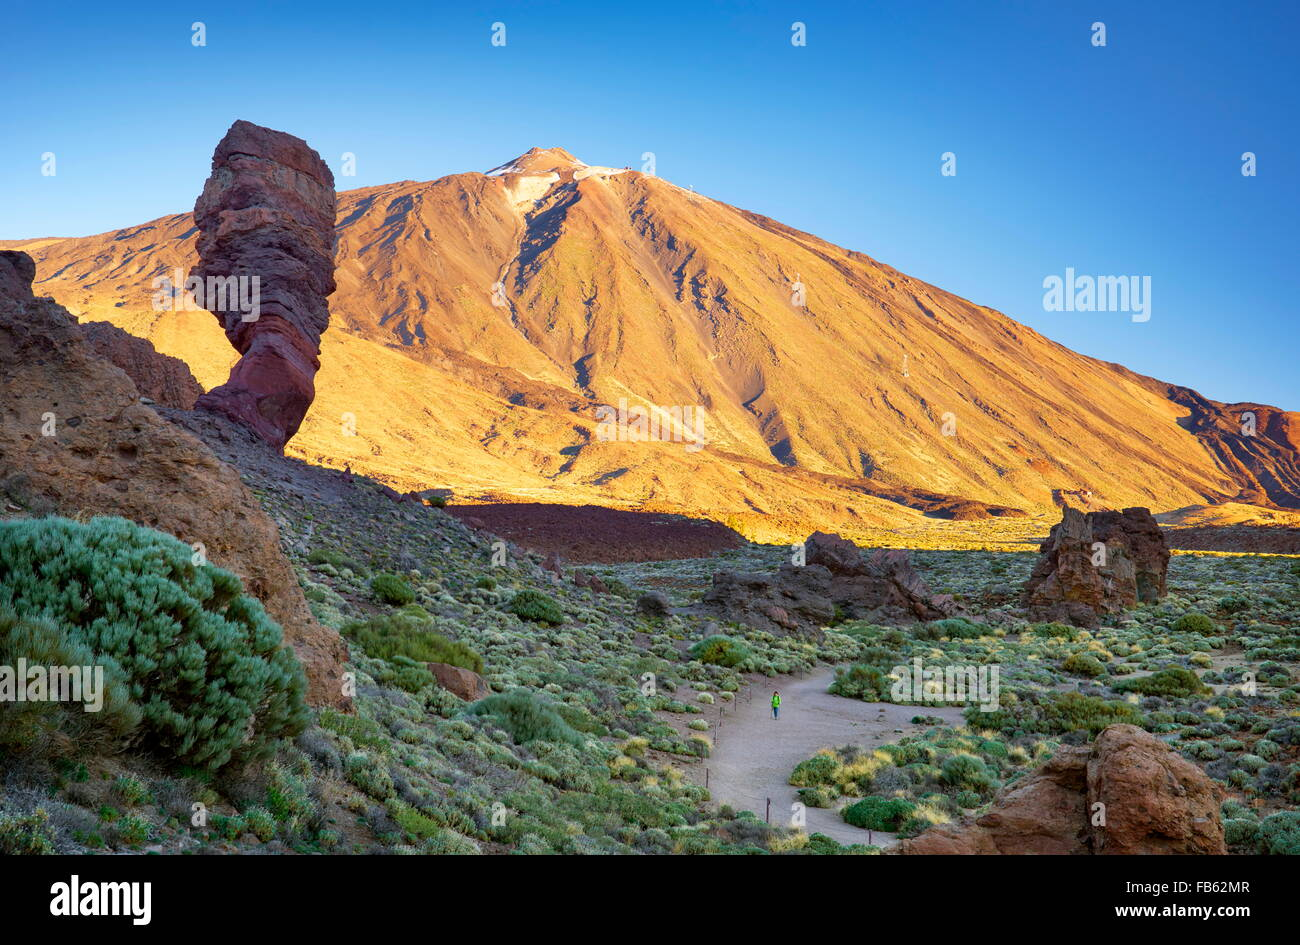 Mount Teide and Los Roques de Garcia, Teide National Park, Canary Islands, Tenerife, Spain - Stock Image